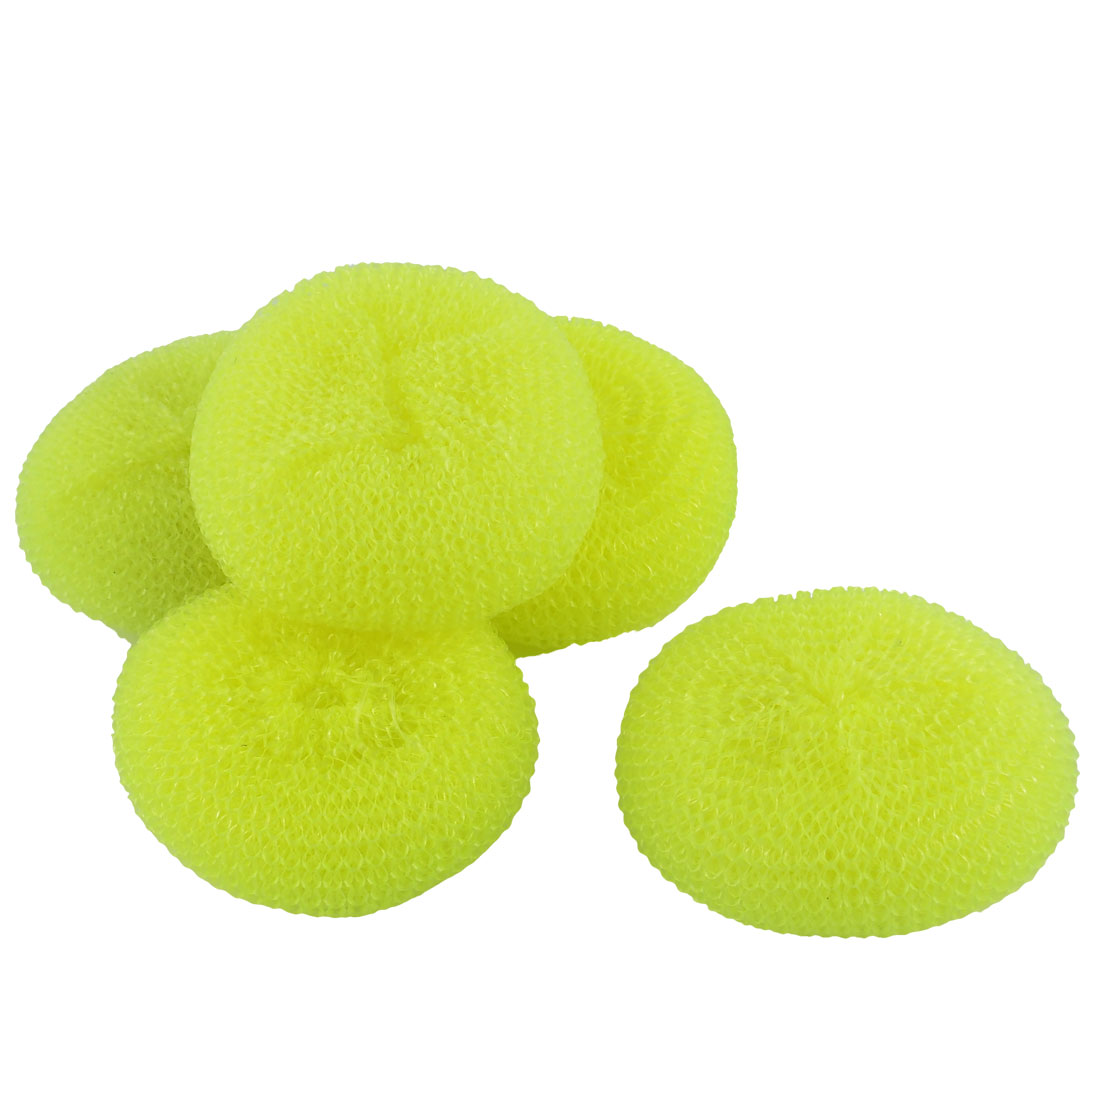 Kitchen Dish Pot Plastic Mesh Scouring Cleaning Scrubber Light Yellow 5pcs